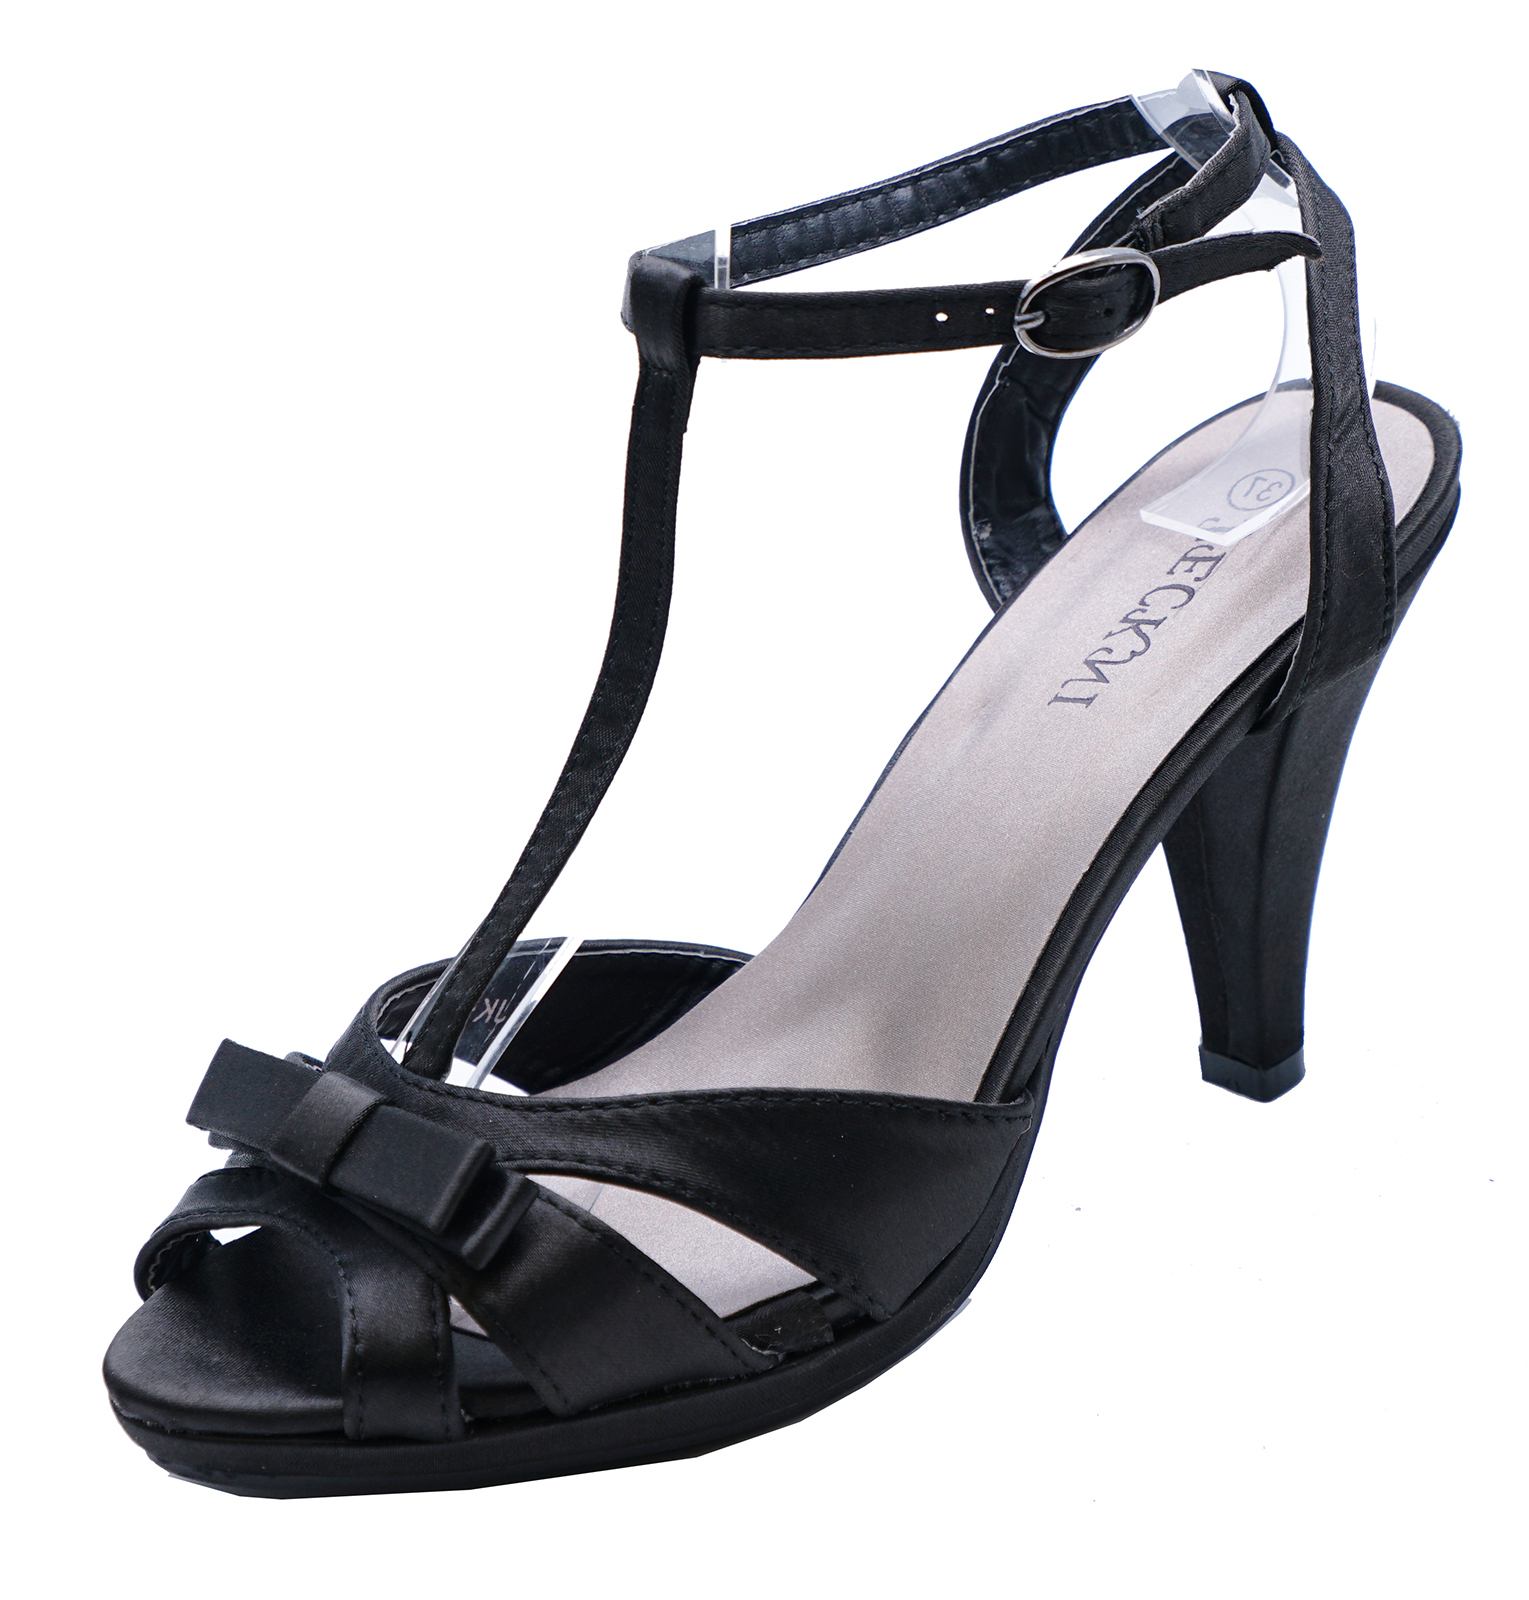 Sentinel LADIES BLACK SATIN STRAPPY SLIP-ON PEEP-TOE EVENING SHOES T-BAR  SANDALS db2226269